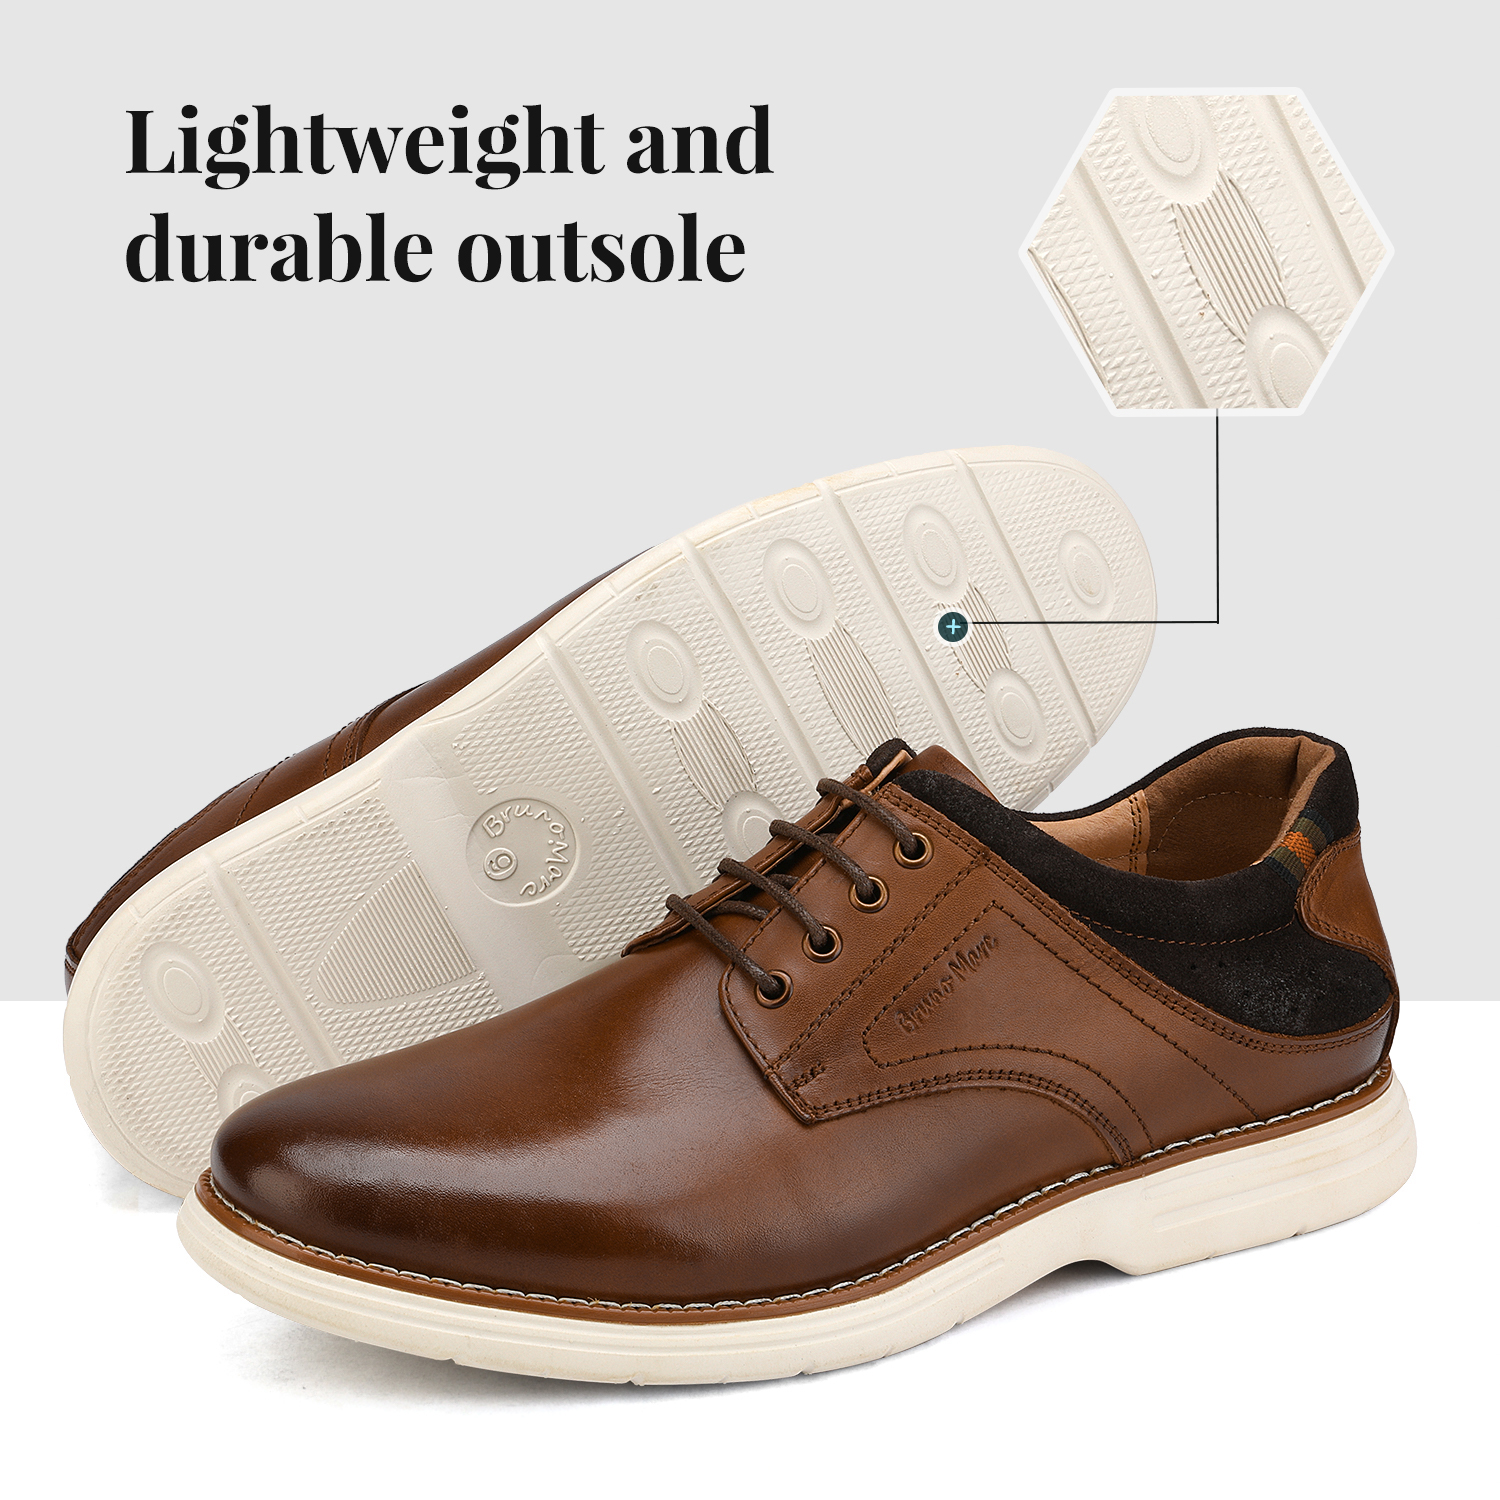 Mens-Fashion-Genuine-Leather-Business-Dress-Sneakers-Casual-Lace-up-Oxford-Shoe thumbnail 41